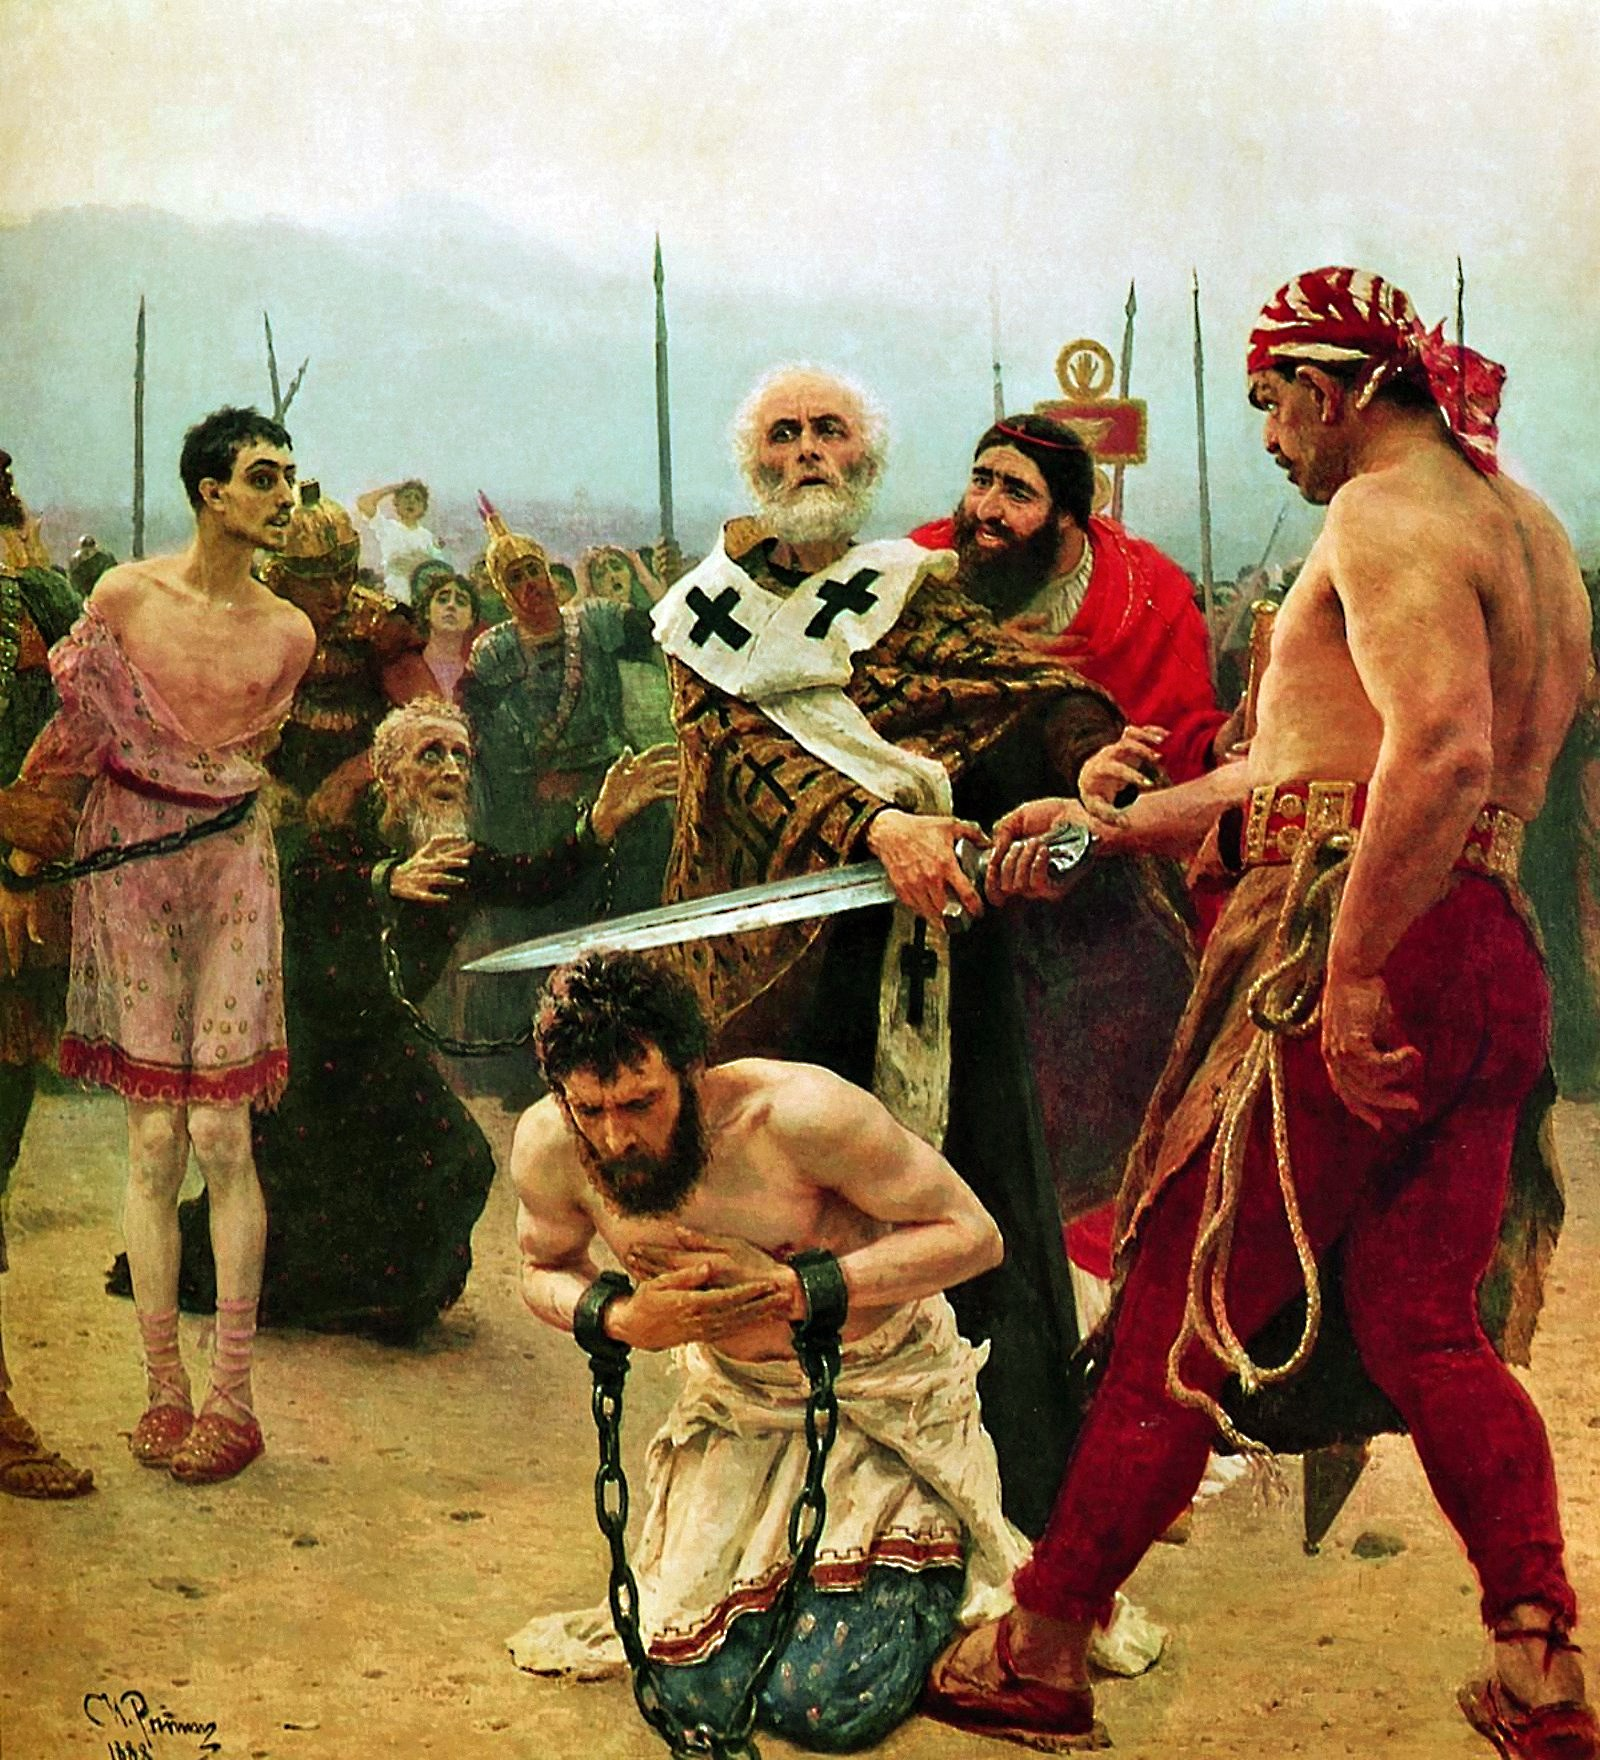 00 Ilya Repin. St Nicholas Prevents the Falsely-Accused from Being Executed. 1889